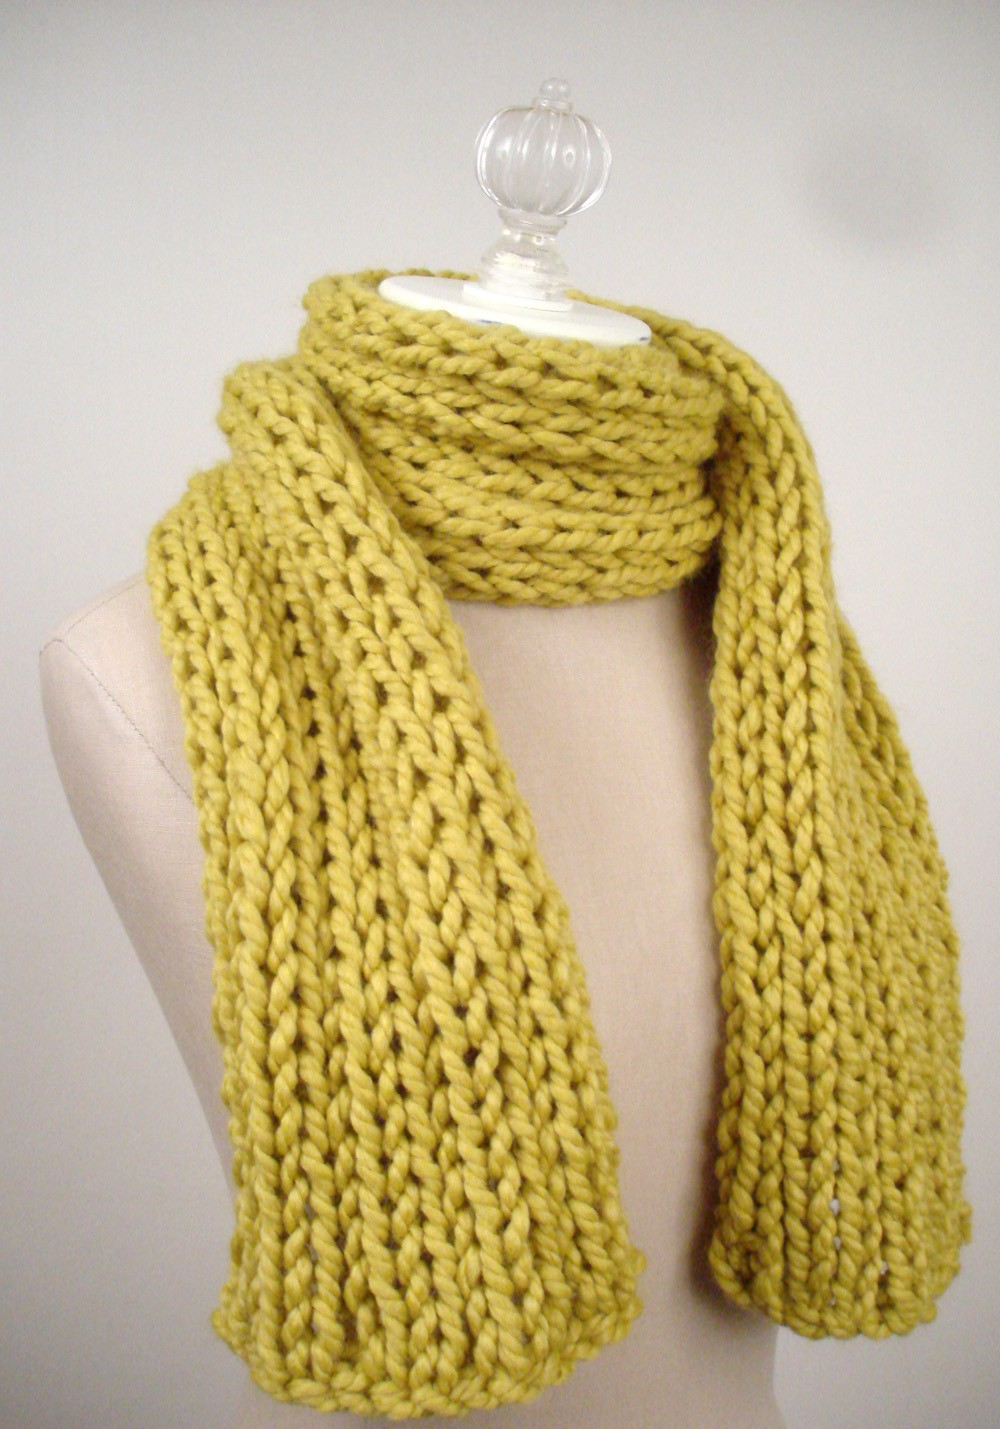 Free Knitting Scarf Patterns For Beginners : EASY KNIT SCARF PATTERNS   Free Patterns